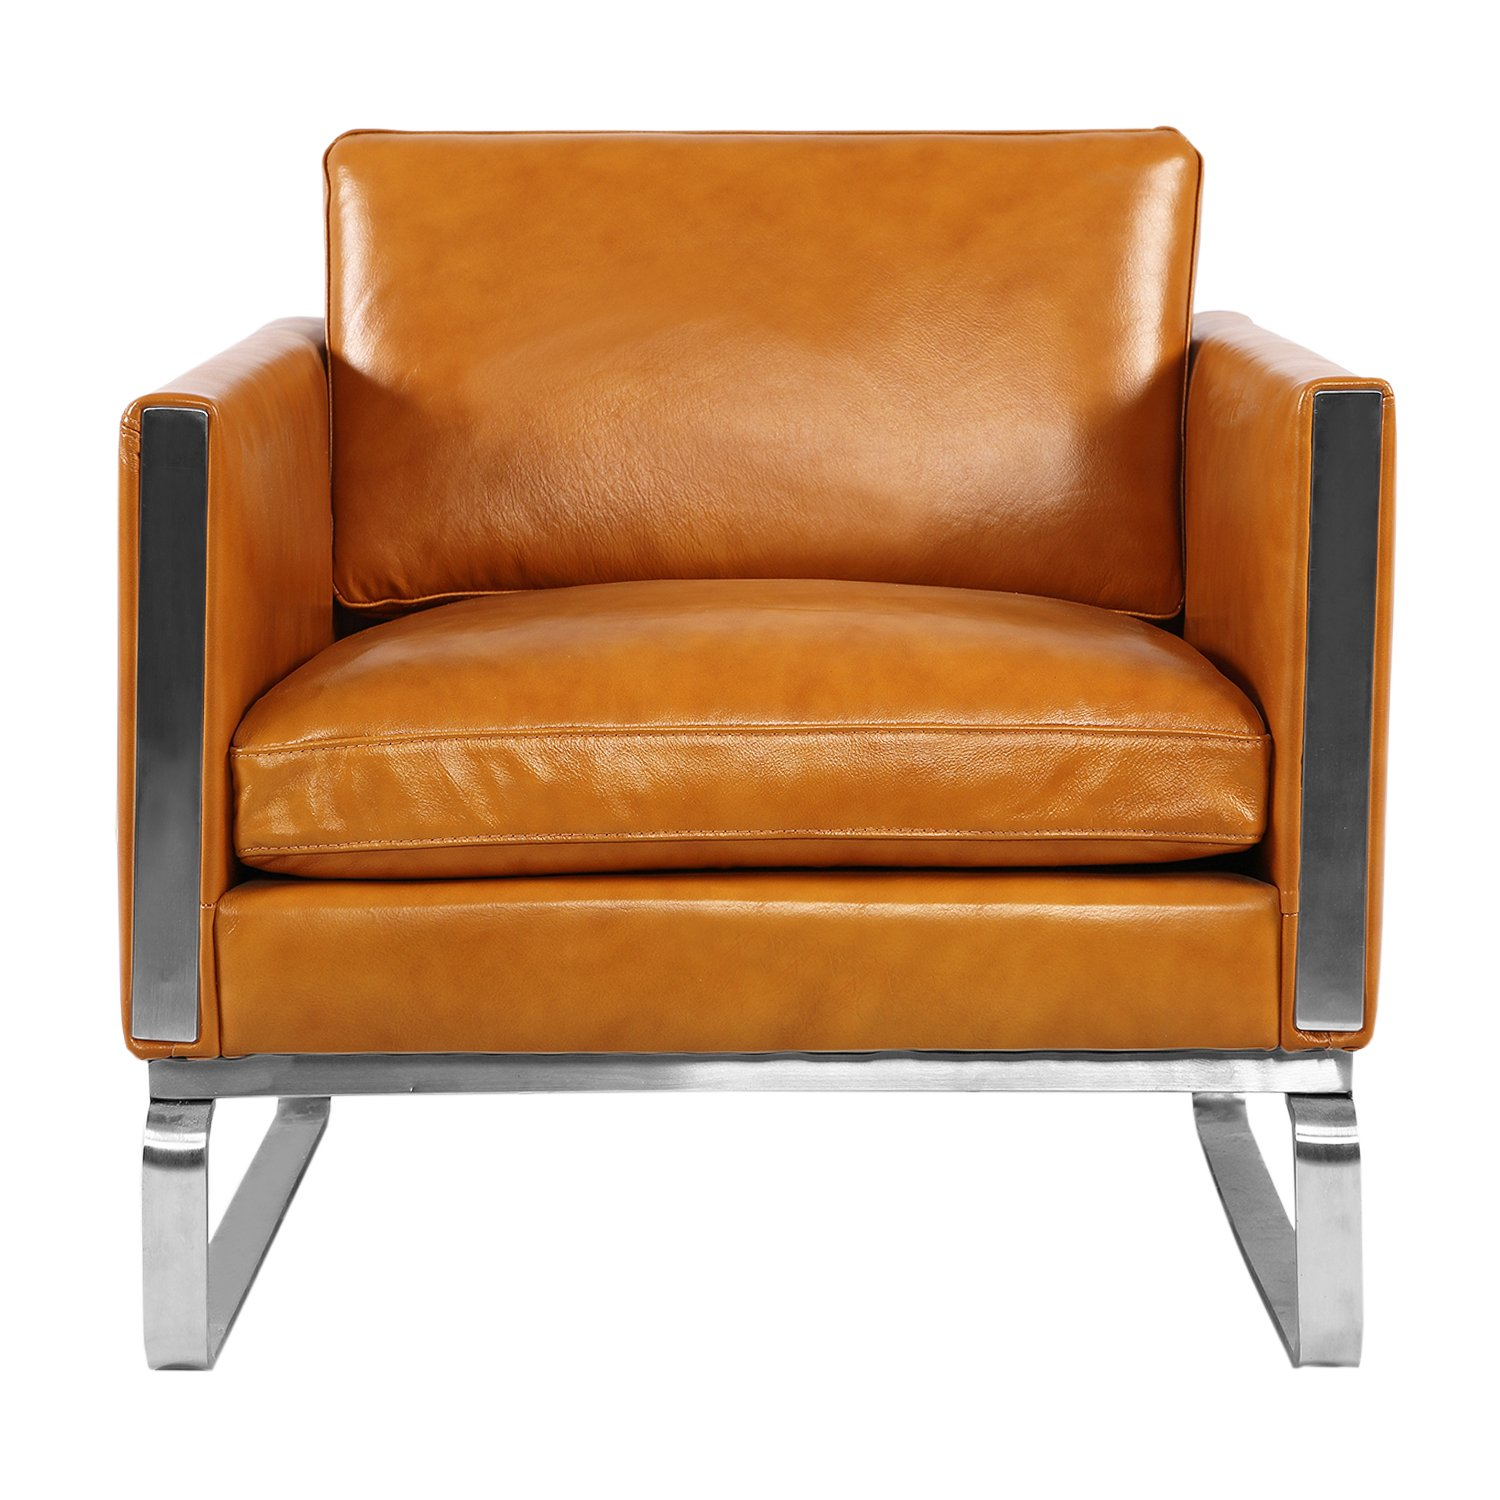 Enjoyable Amazon Com Kardiel Amsterdam Ch101 Mid Century Modern Chair Caraccident5 Cool Chair Designs And Ideas Caraccident5Info